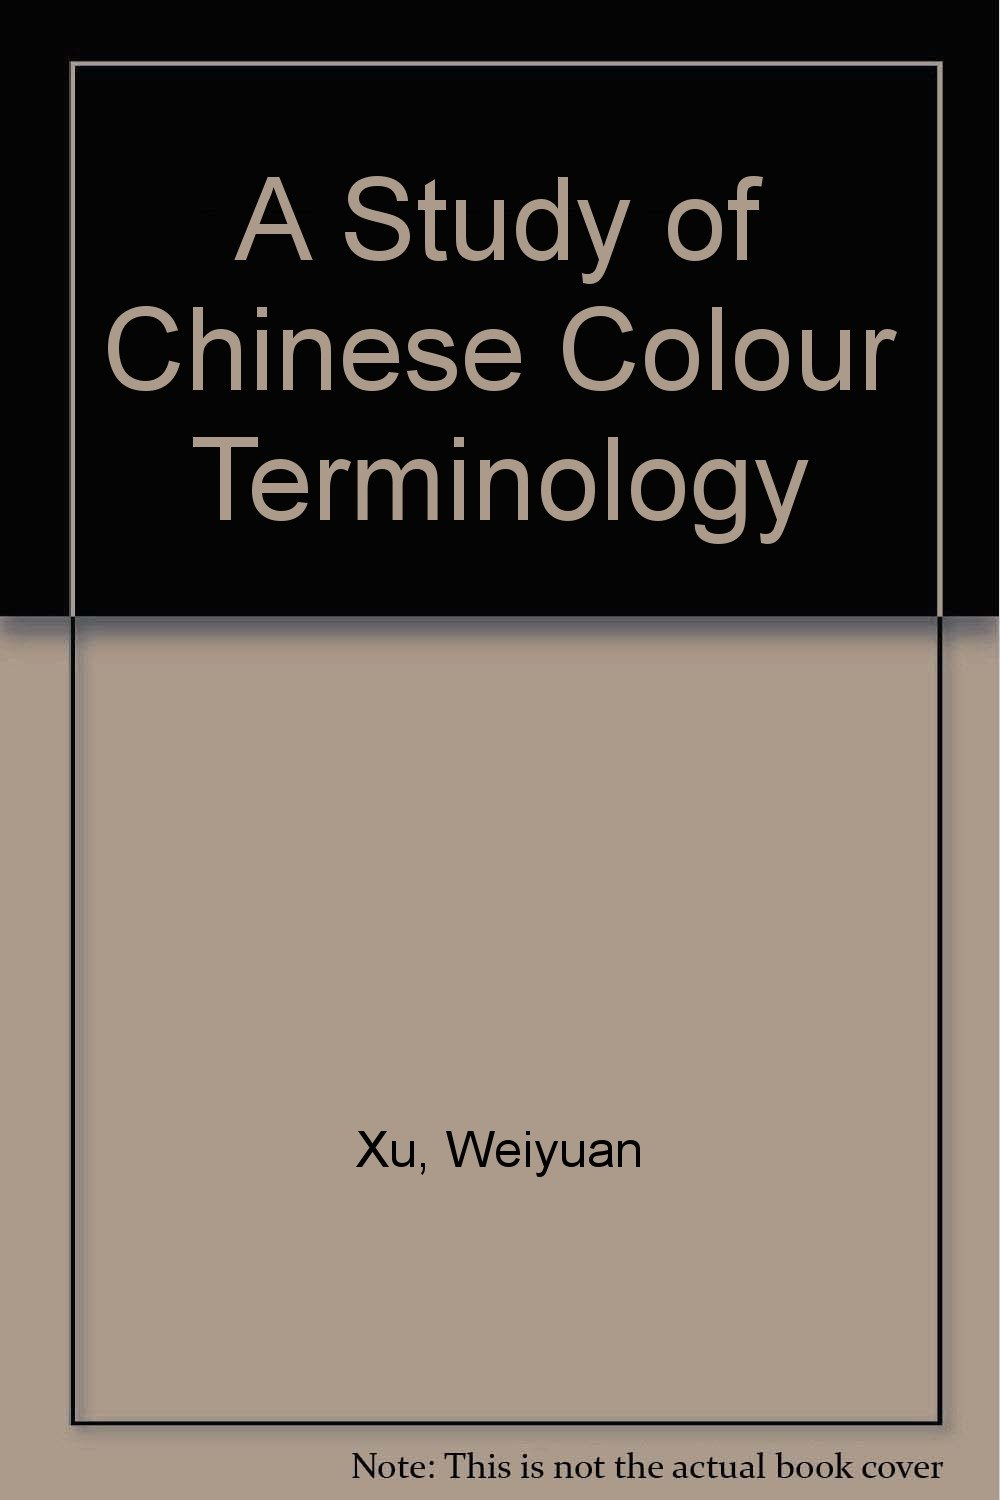 A Study of Chinese Colour Terminology PDF